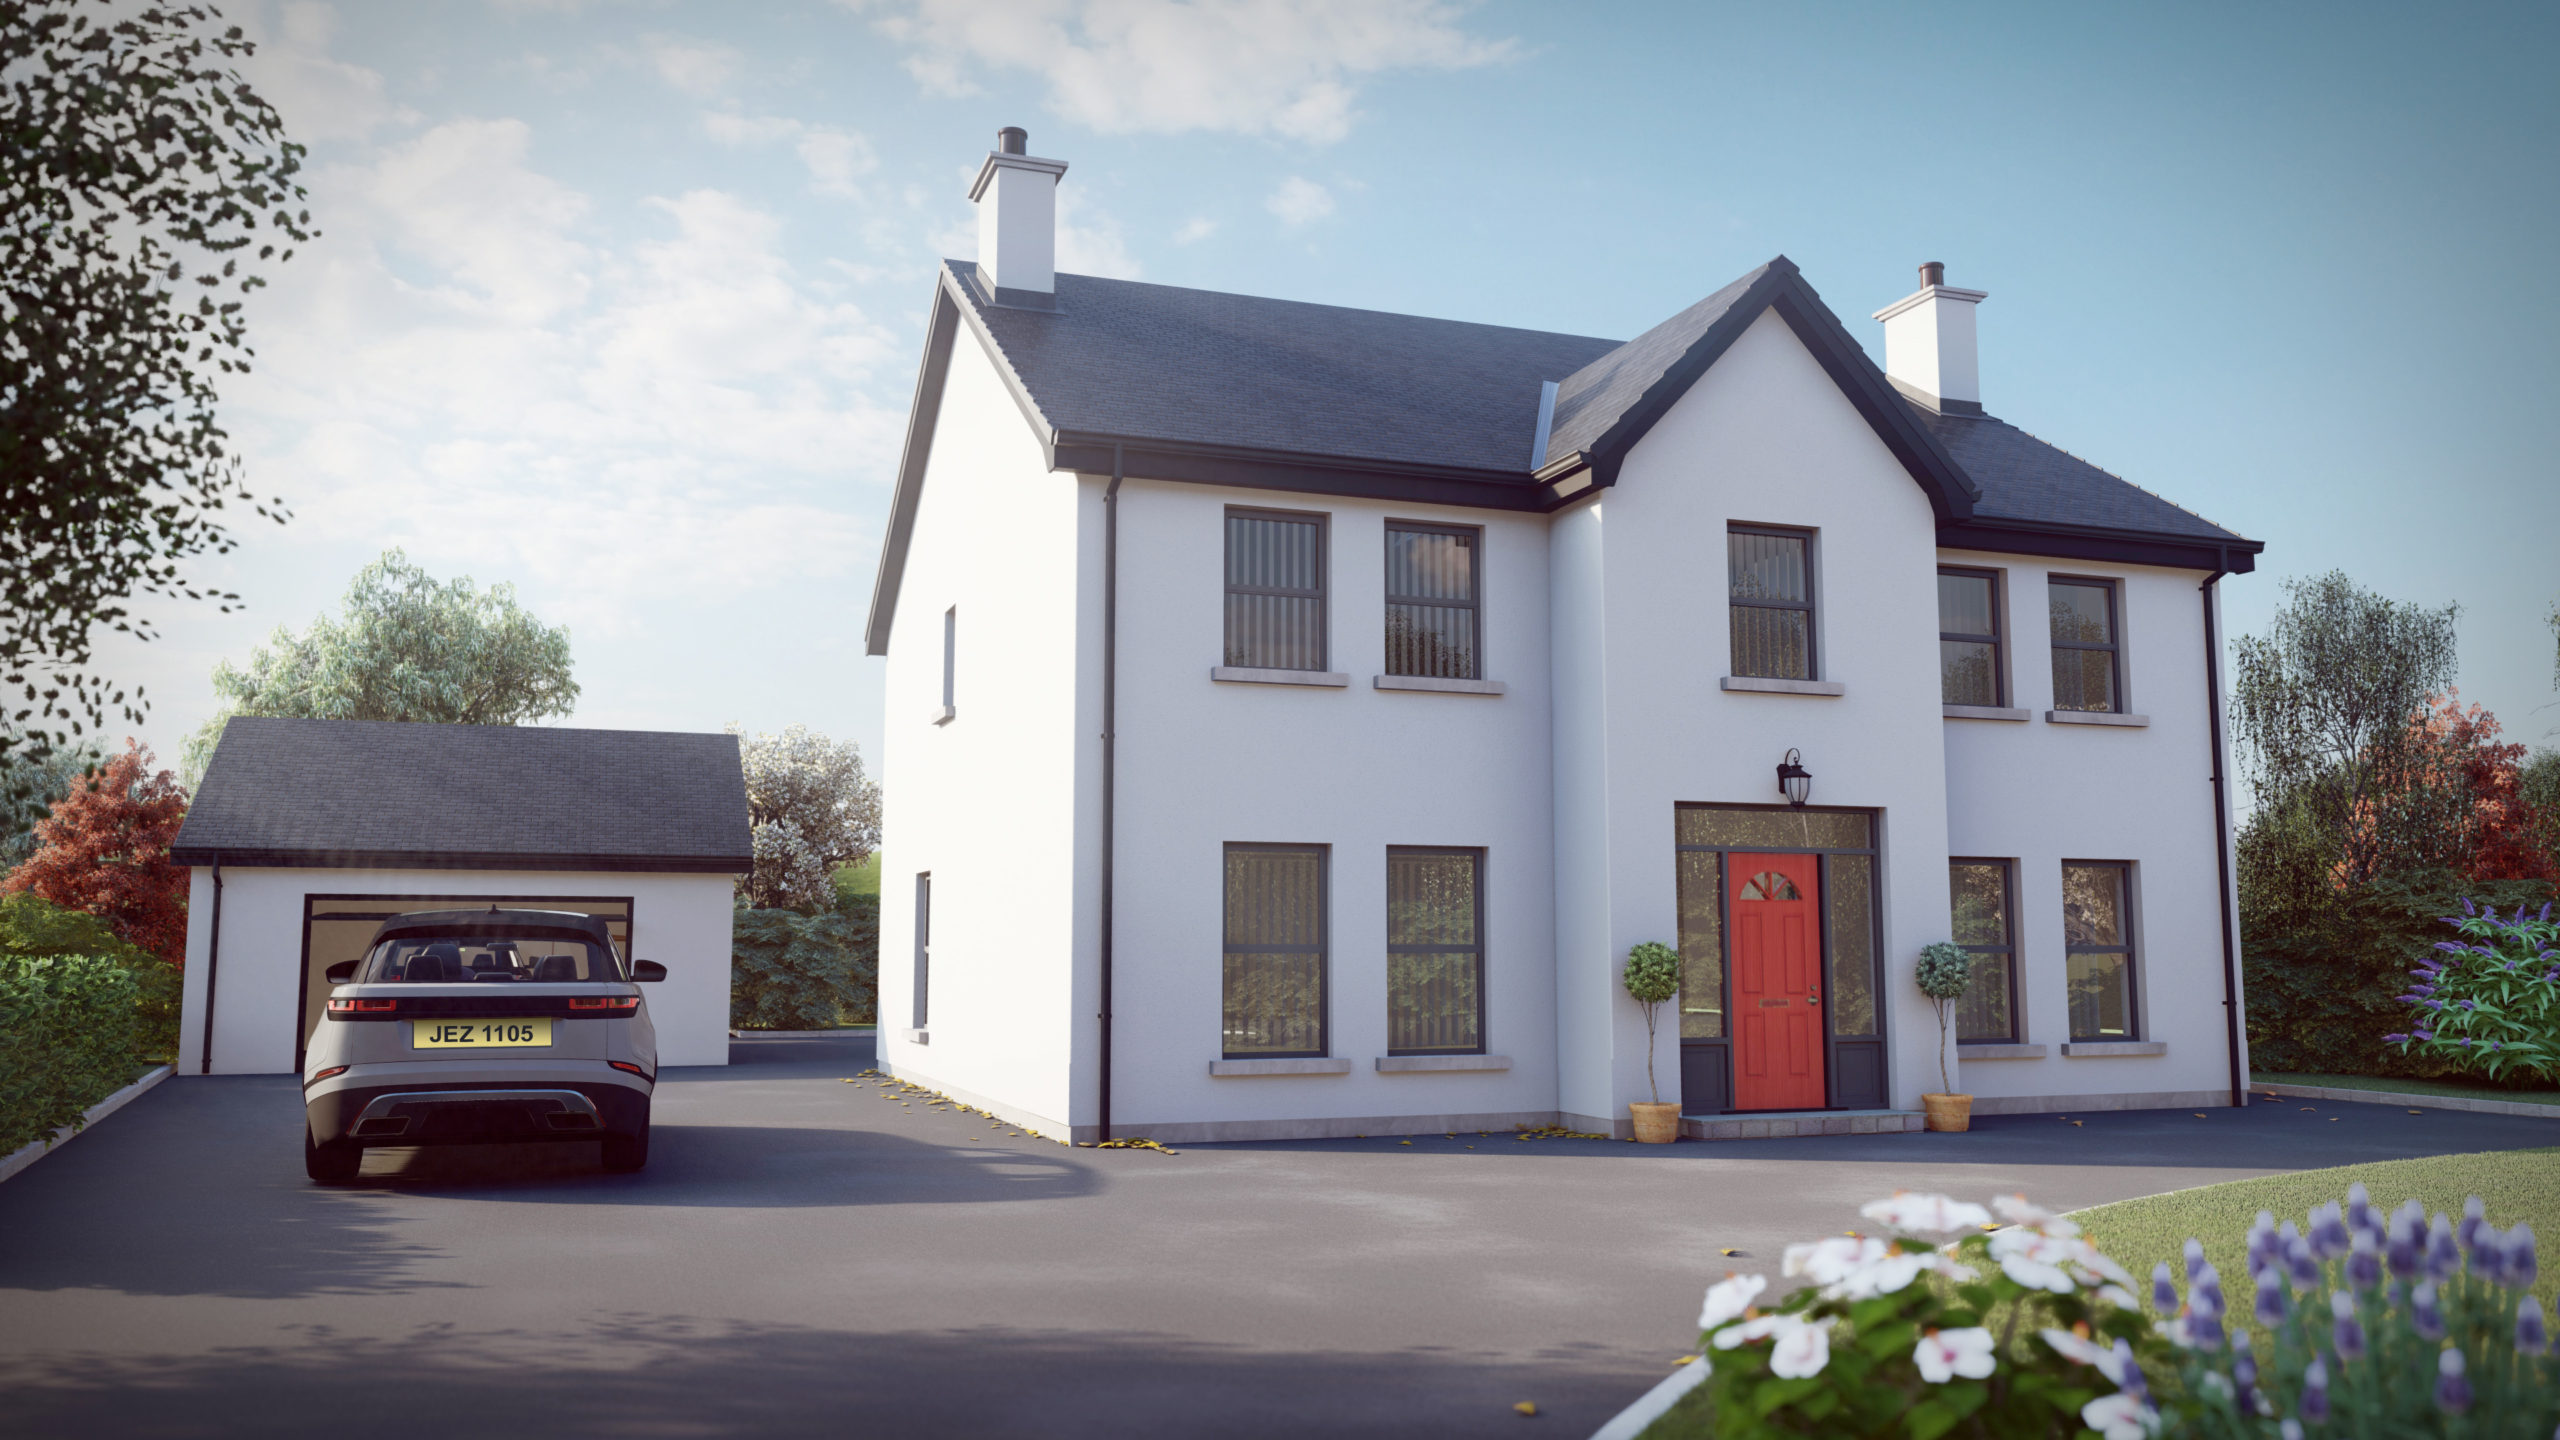 Image of 136 Carnalbanagh Road, Brougshane, Ballymena, Co Antrim, BT42 4NT